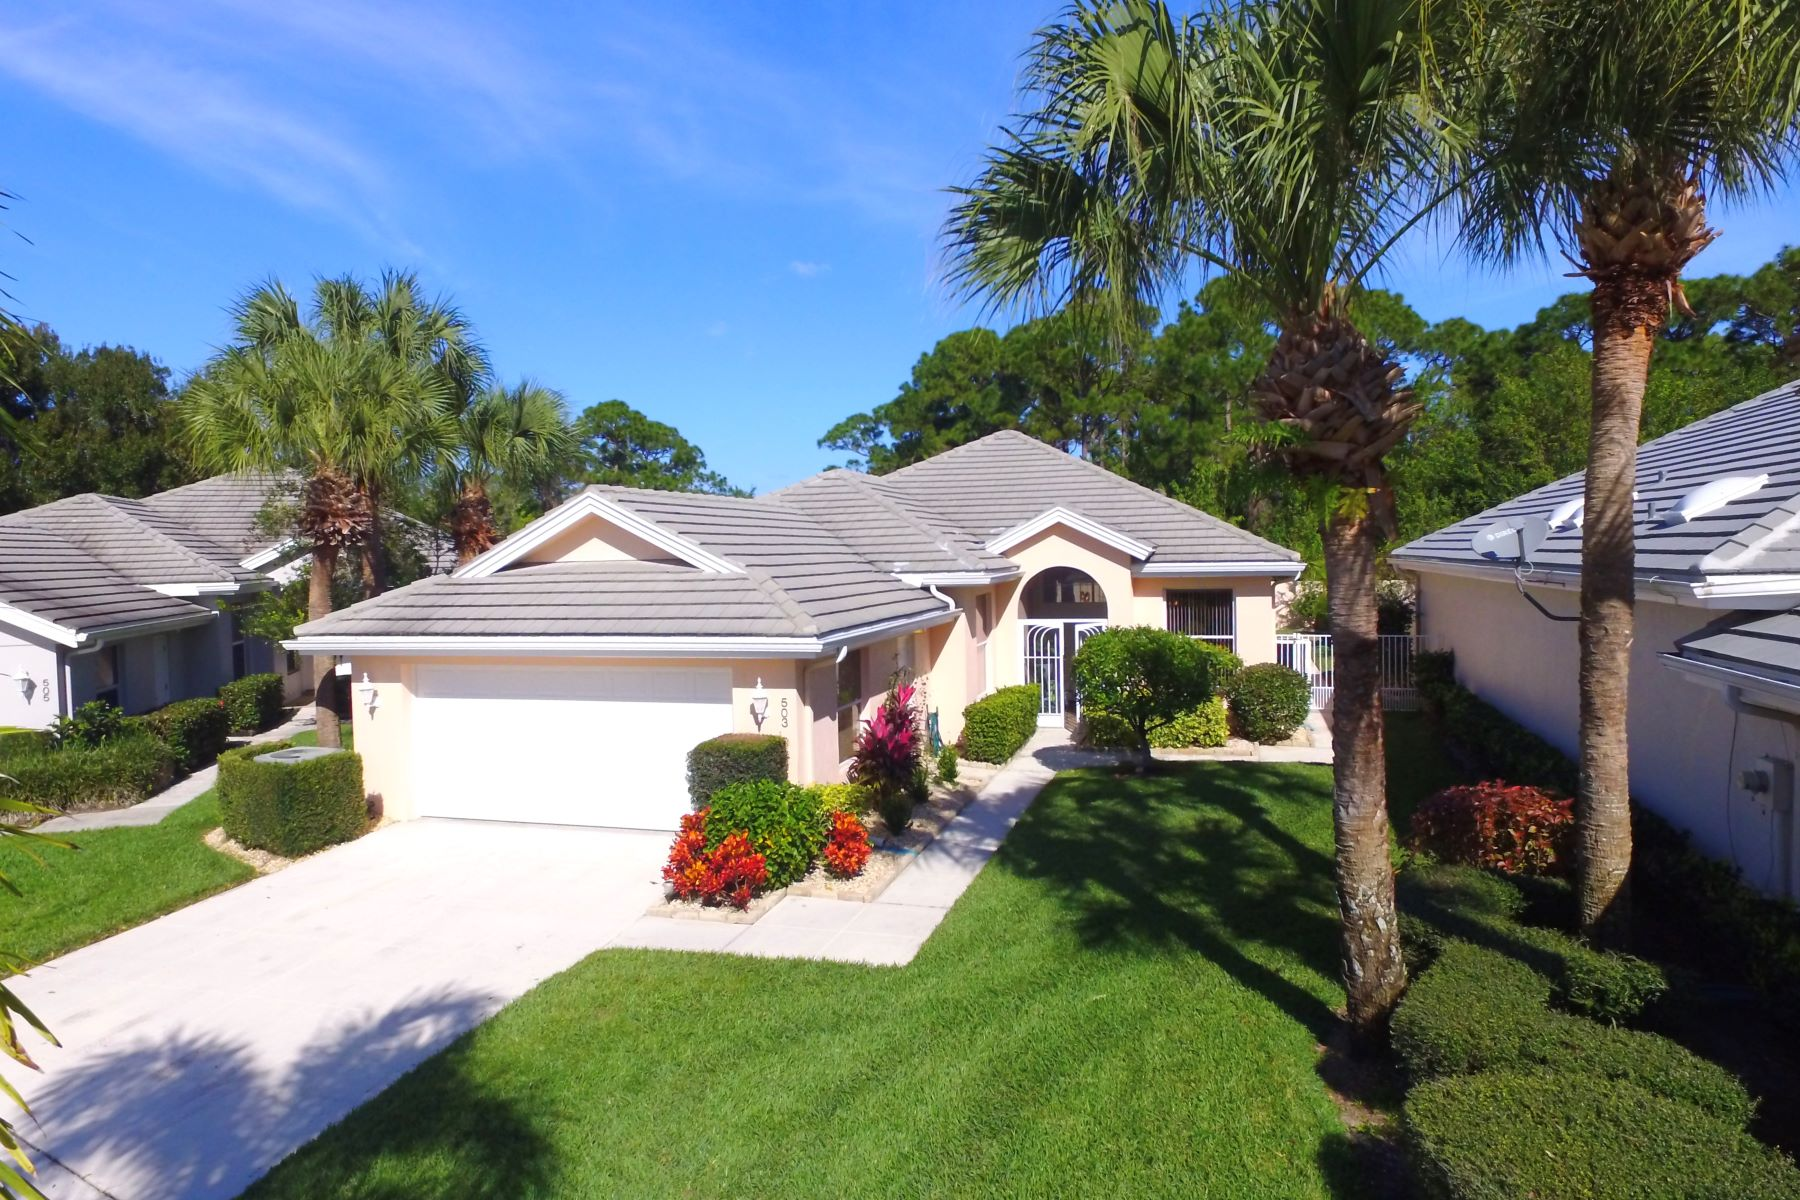 Property for Sale at Stylishly Updated Home 503 Sw Hampton Court Port St. Lucie, Florida 34986 United States